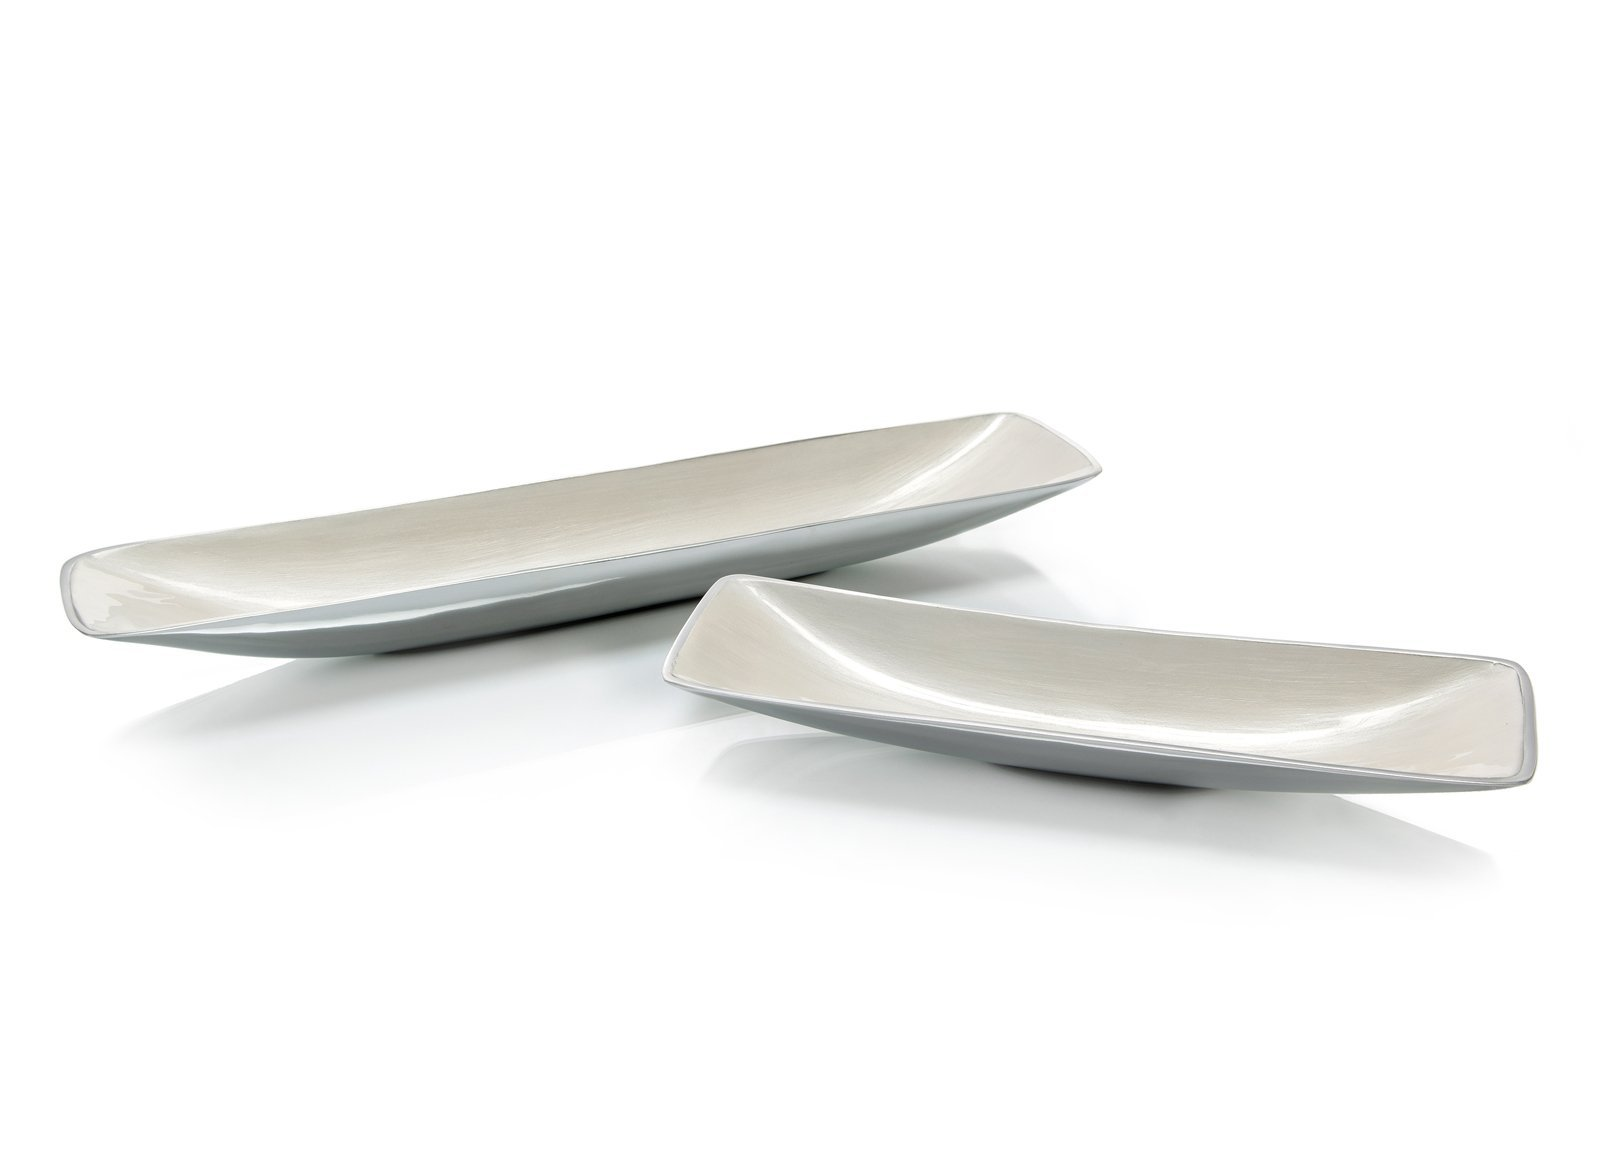 Set of Two Long Trays in Silver Streaked White Enamel